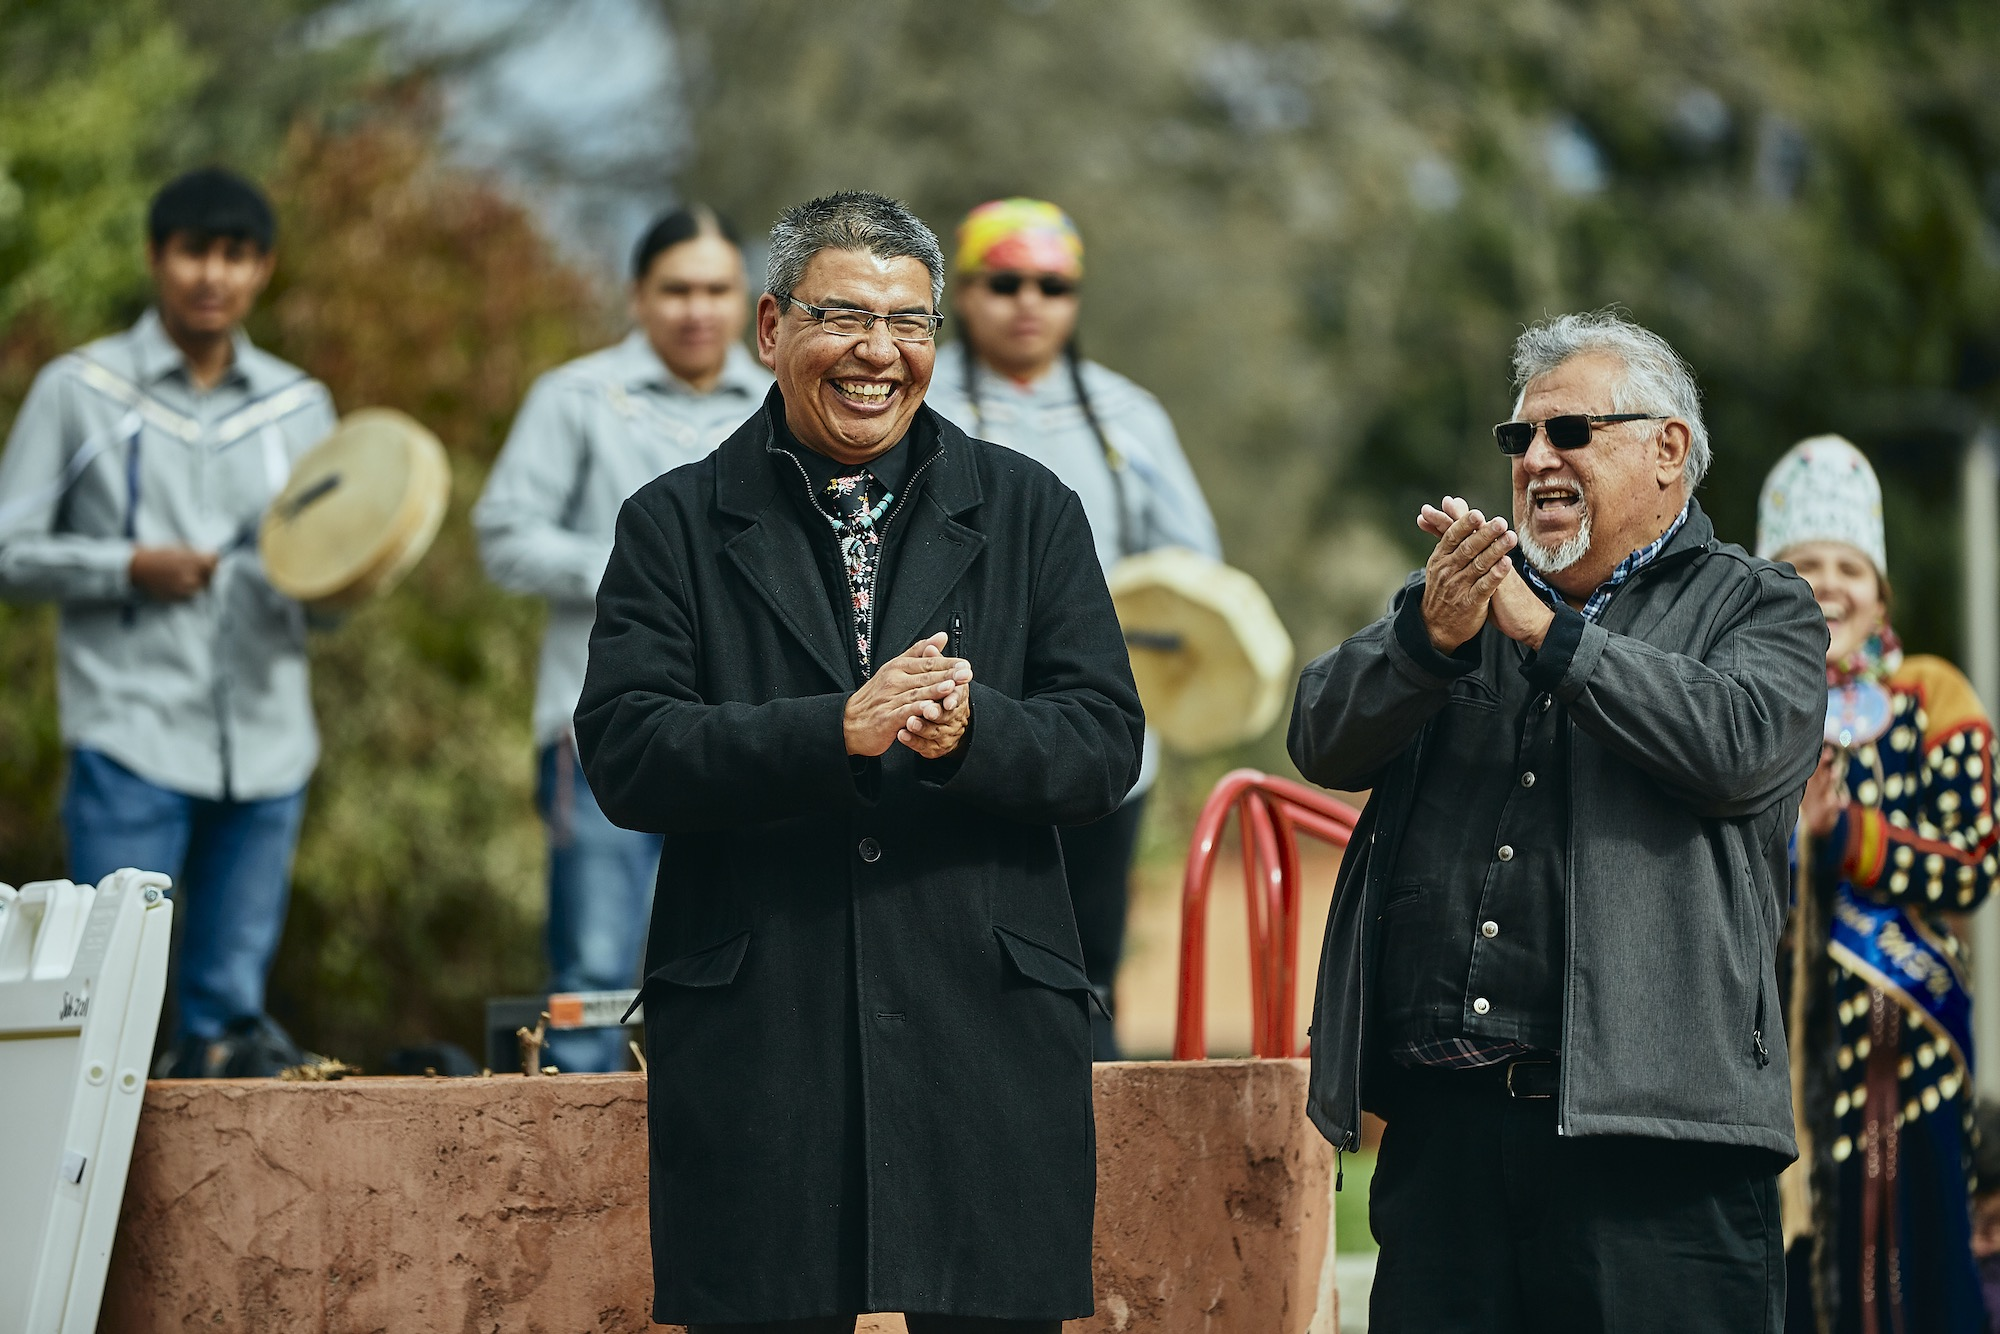 BirdRattler to speak about collaborations with tribes at MSU's Berger Lecture on February 11